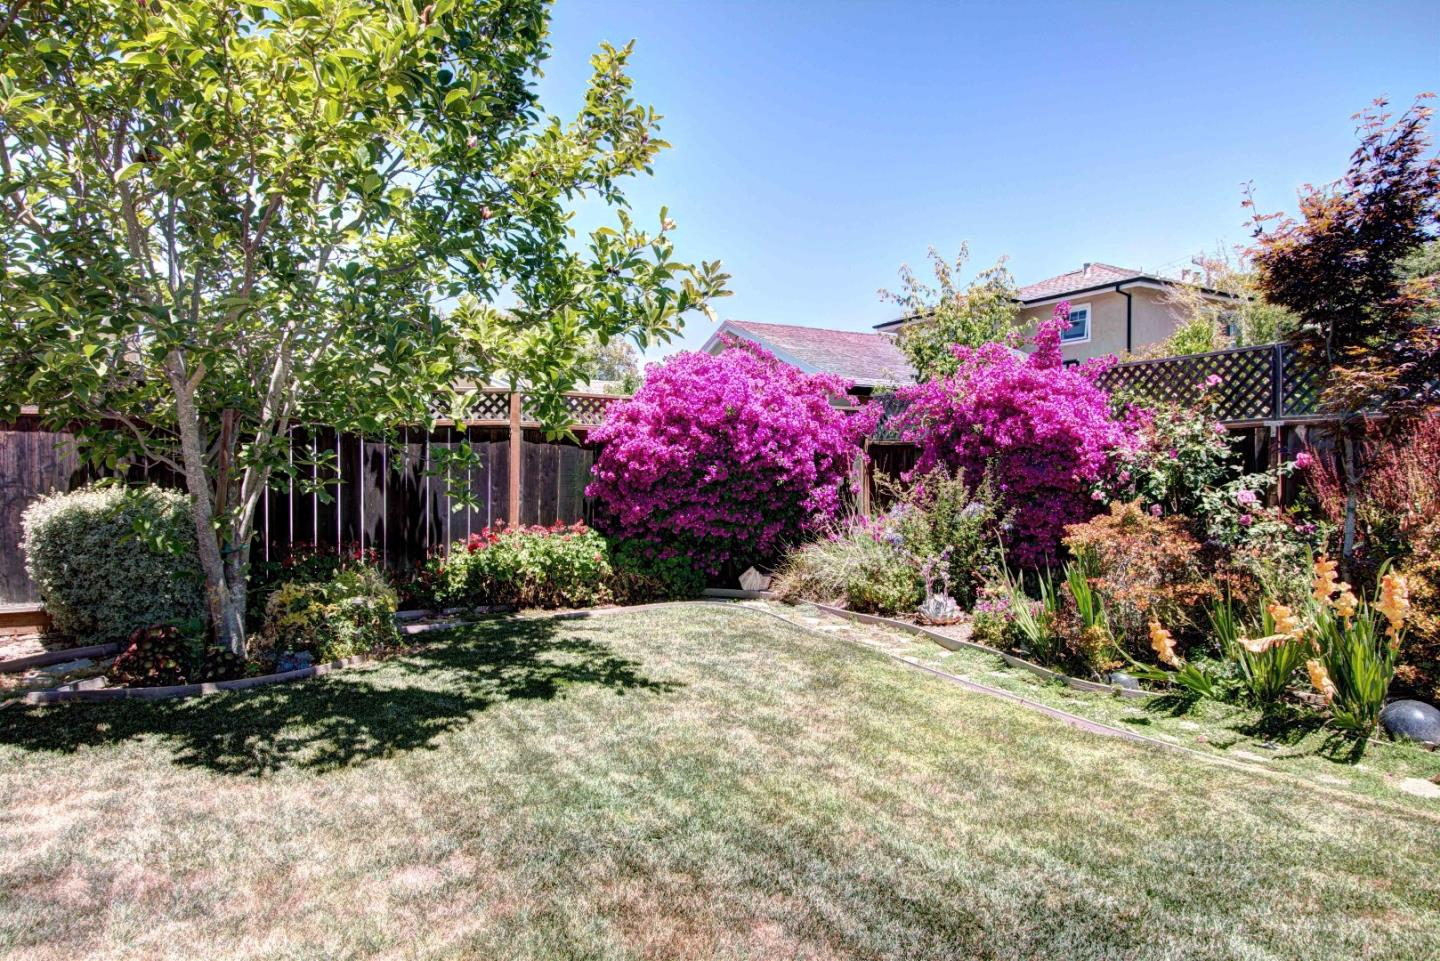 Additional photo for property listing at 1229 Quince Street  San Mateo, Kalifornien 94402 Vereinigte Staaten